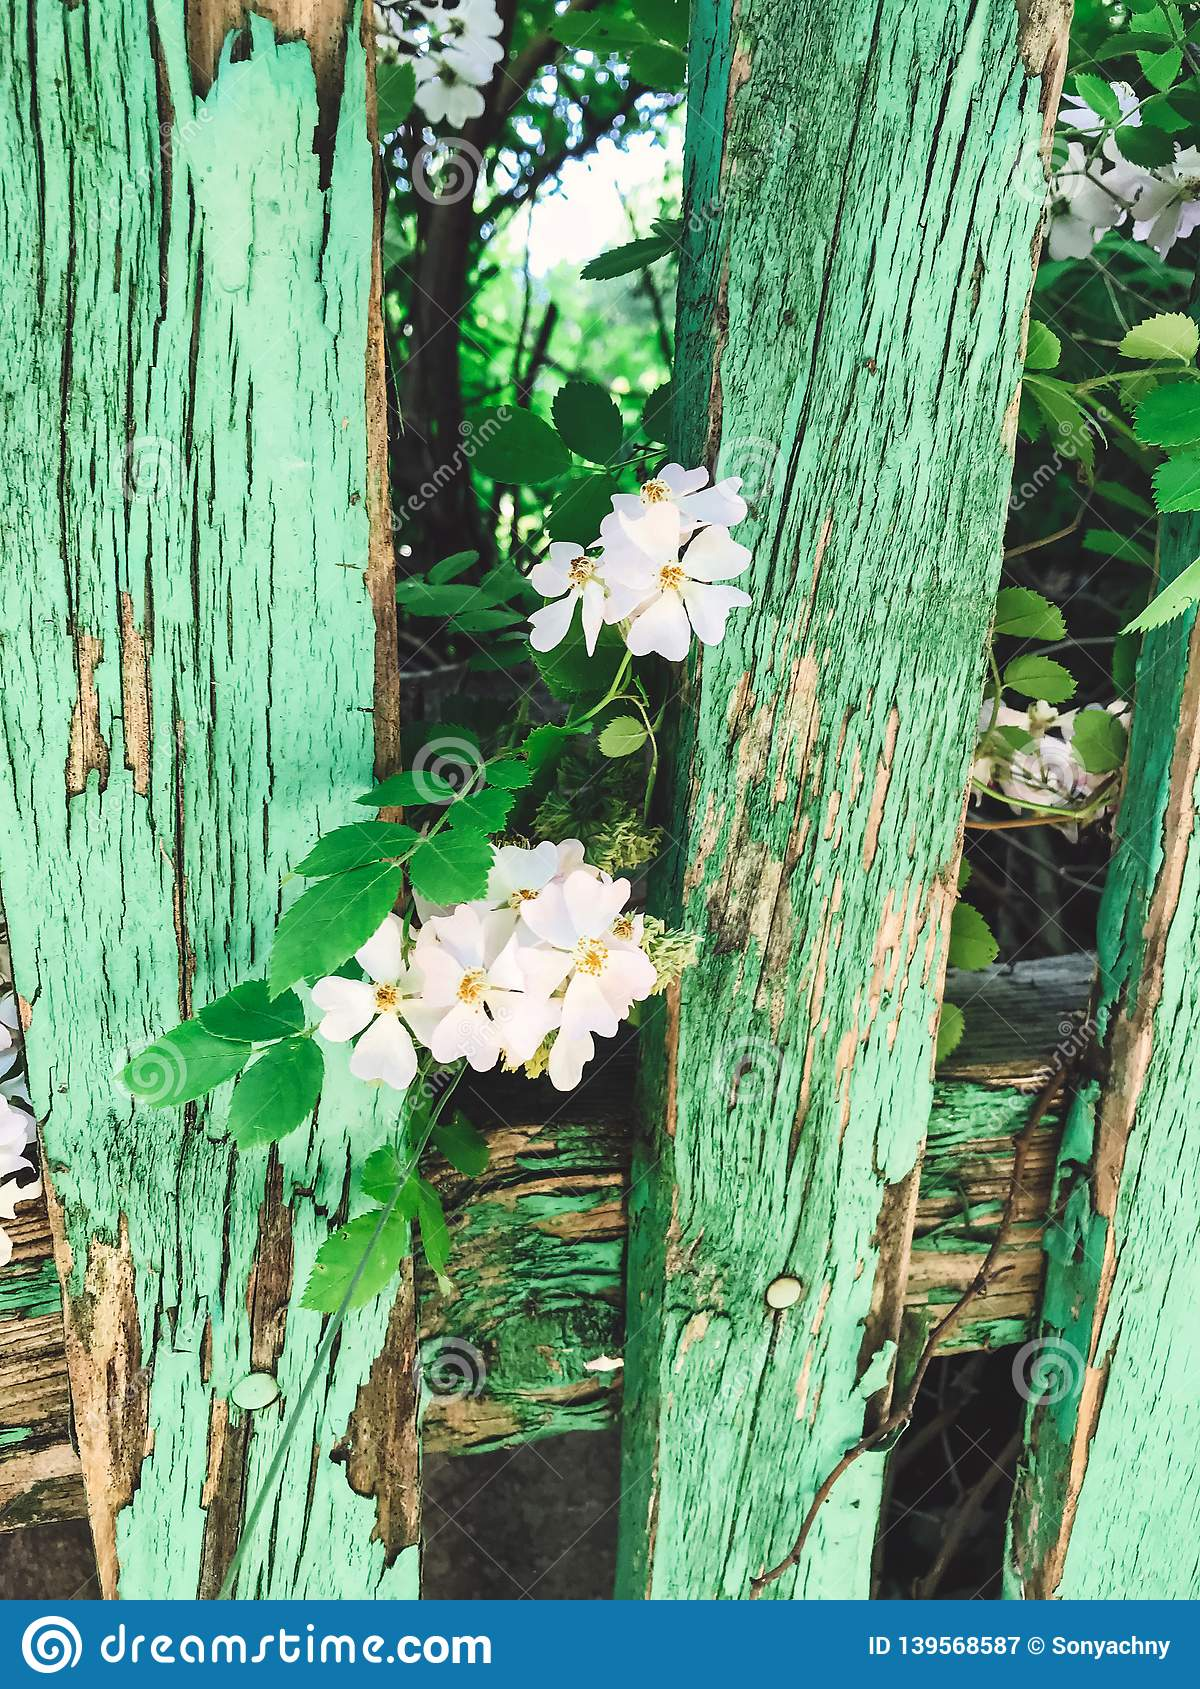 Fresh white flowers and green leaves on old wooden fence,clematis, jasmine or wild rose bush. Beautiful tender shrub with flowers